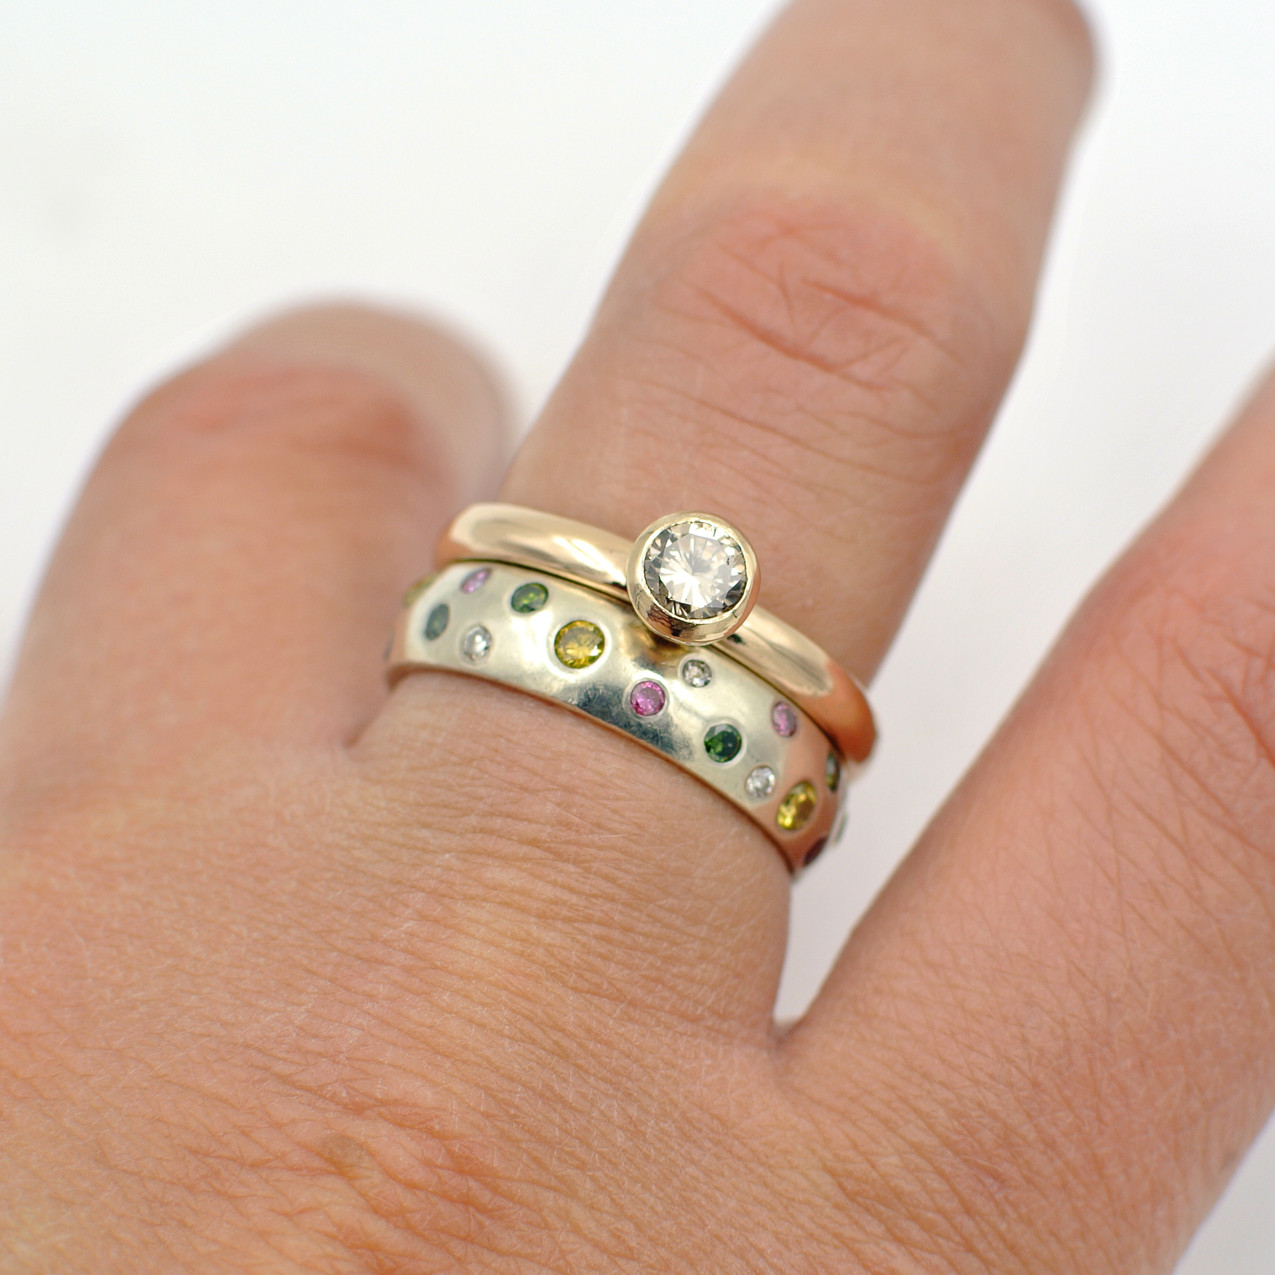 A finished remodelled diamond ring sat next to a bright and colourful diamond eternity ring.